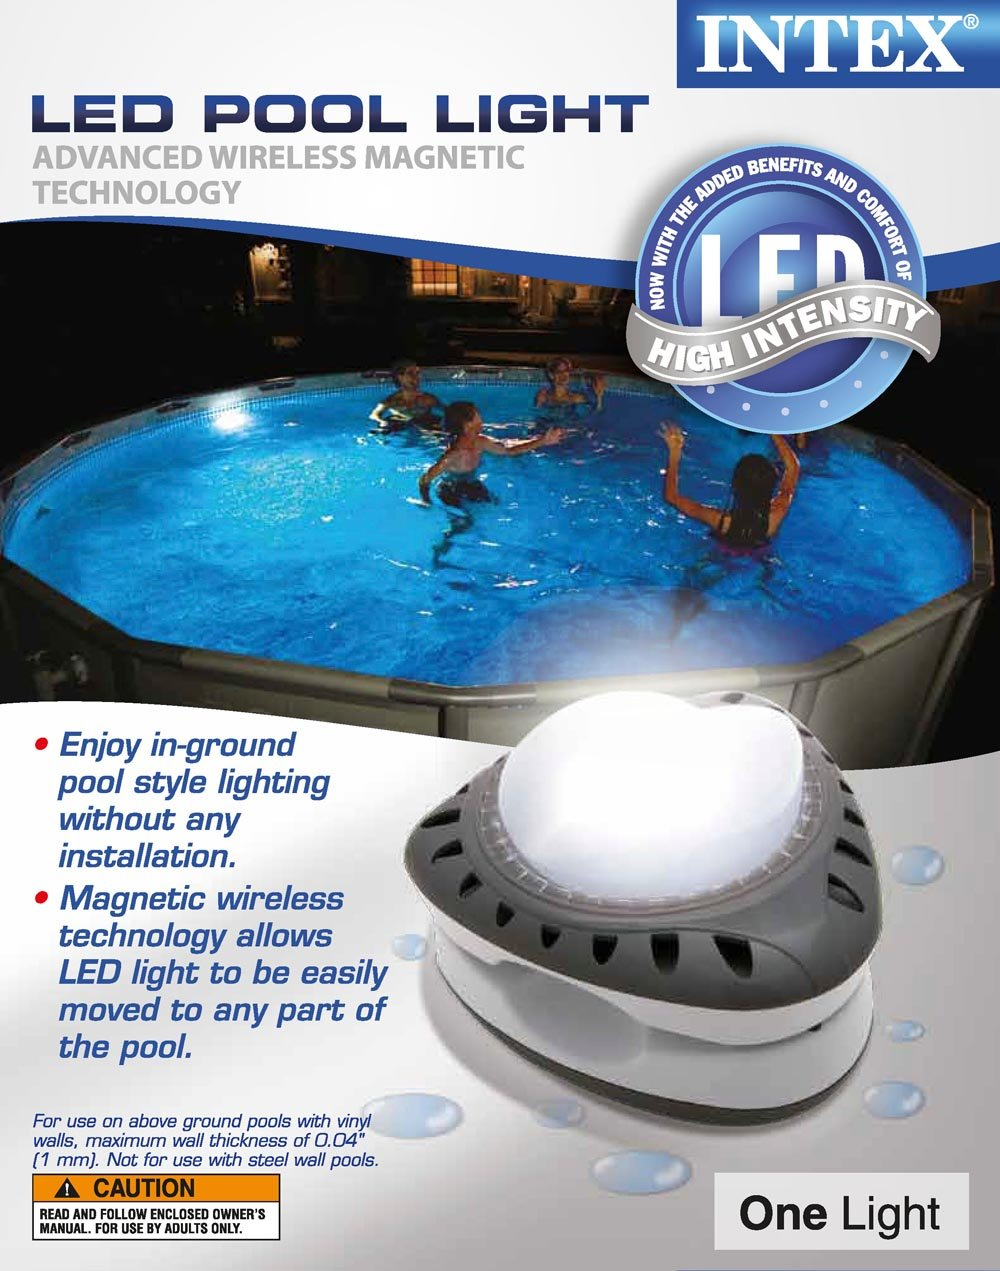 Intex Above Ground Energy Efficient LED Magnetic Pool Light (2 Pack) | 28687E by Intex